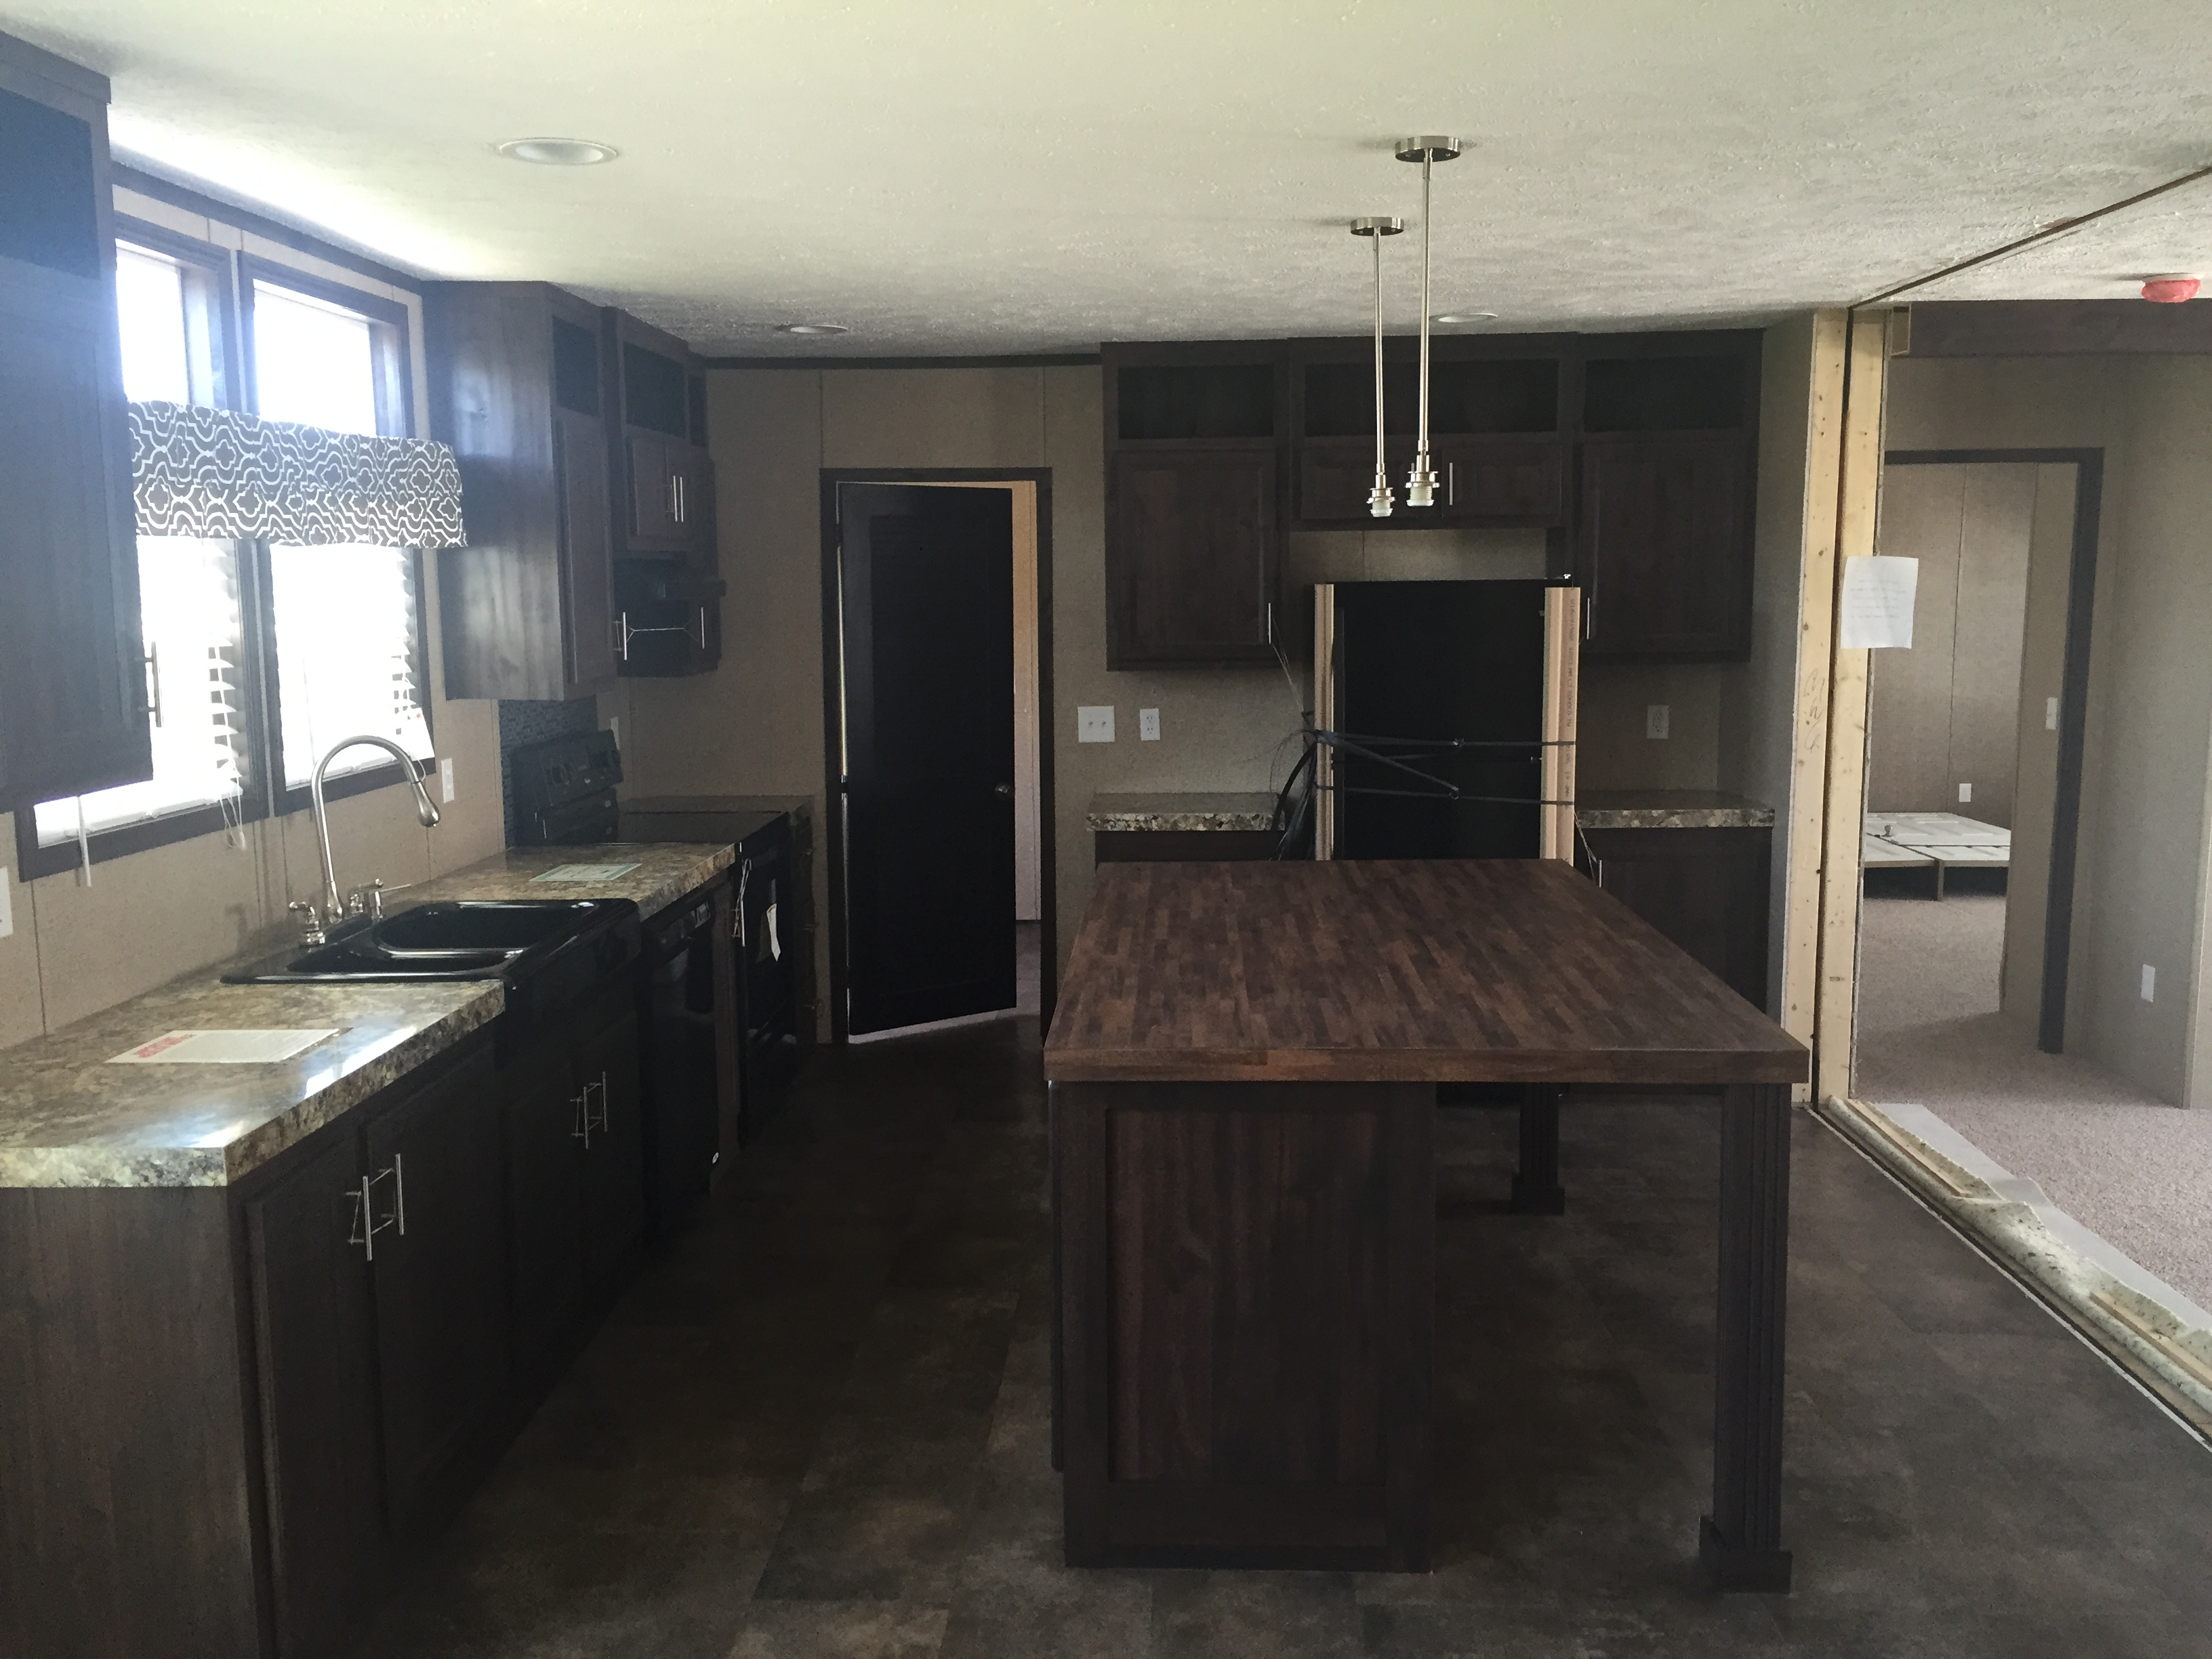 2018 Clayton The Number One Mark Twain Mobile Homes